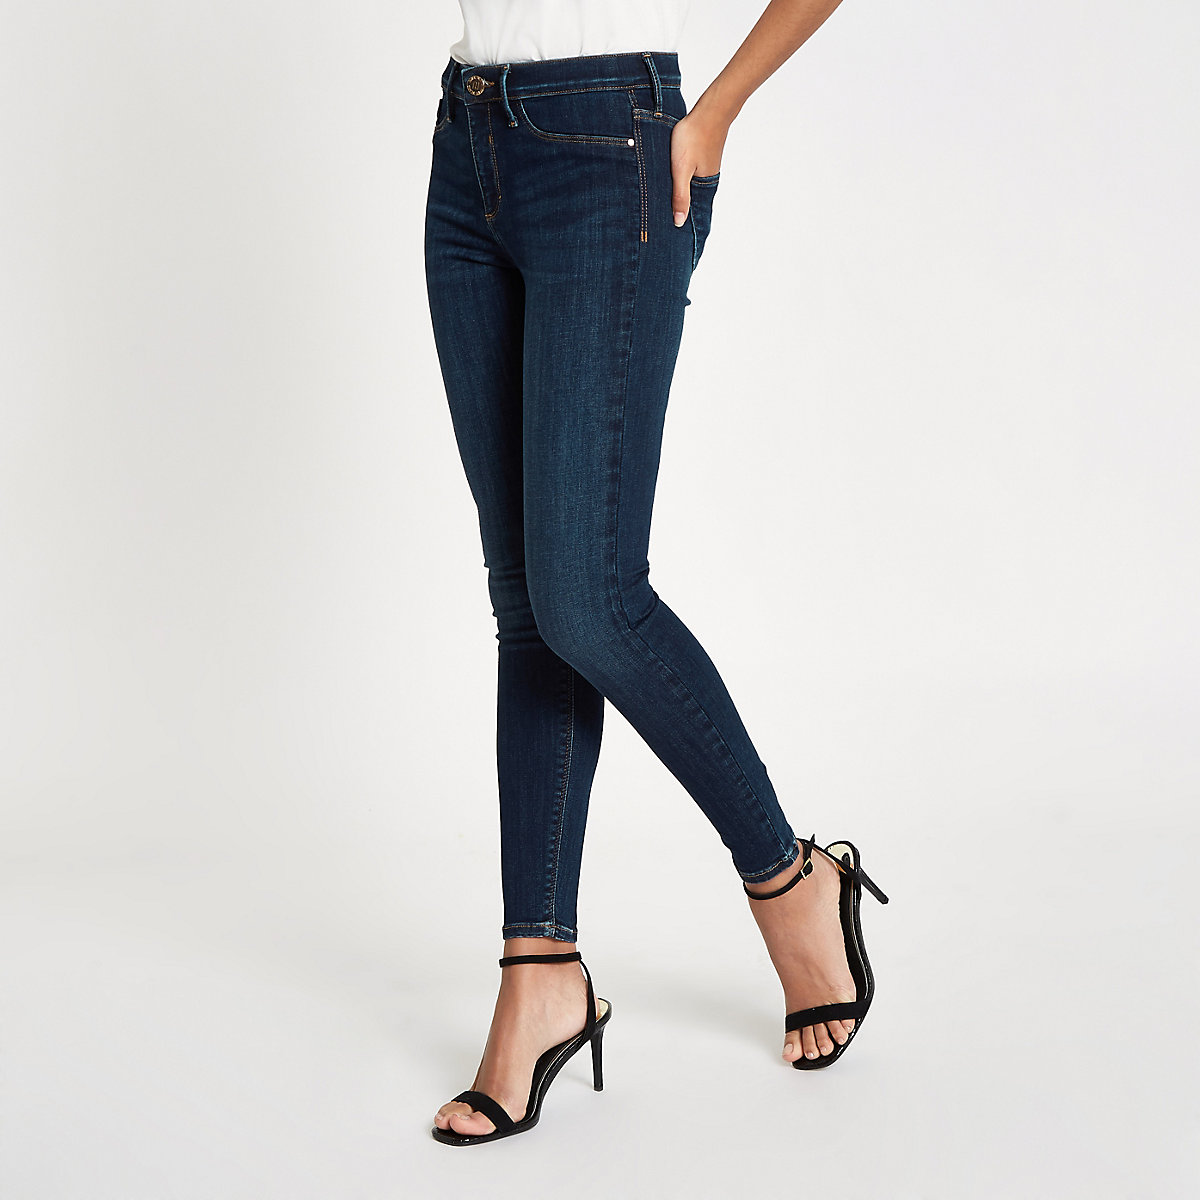 Dark blue Molly mid rise jeans